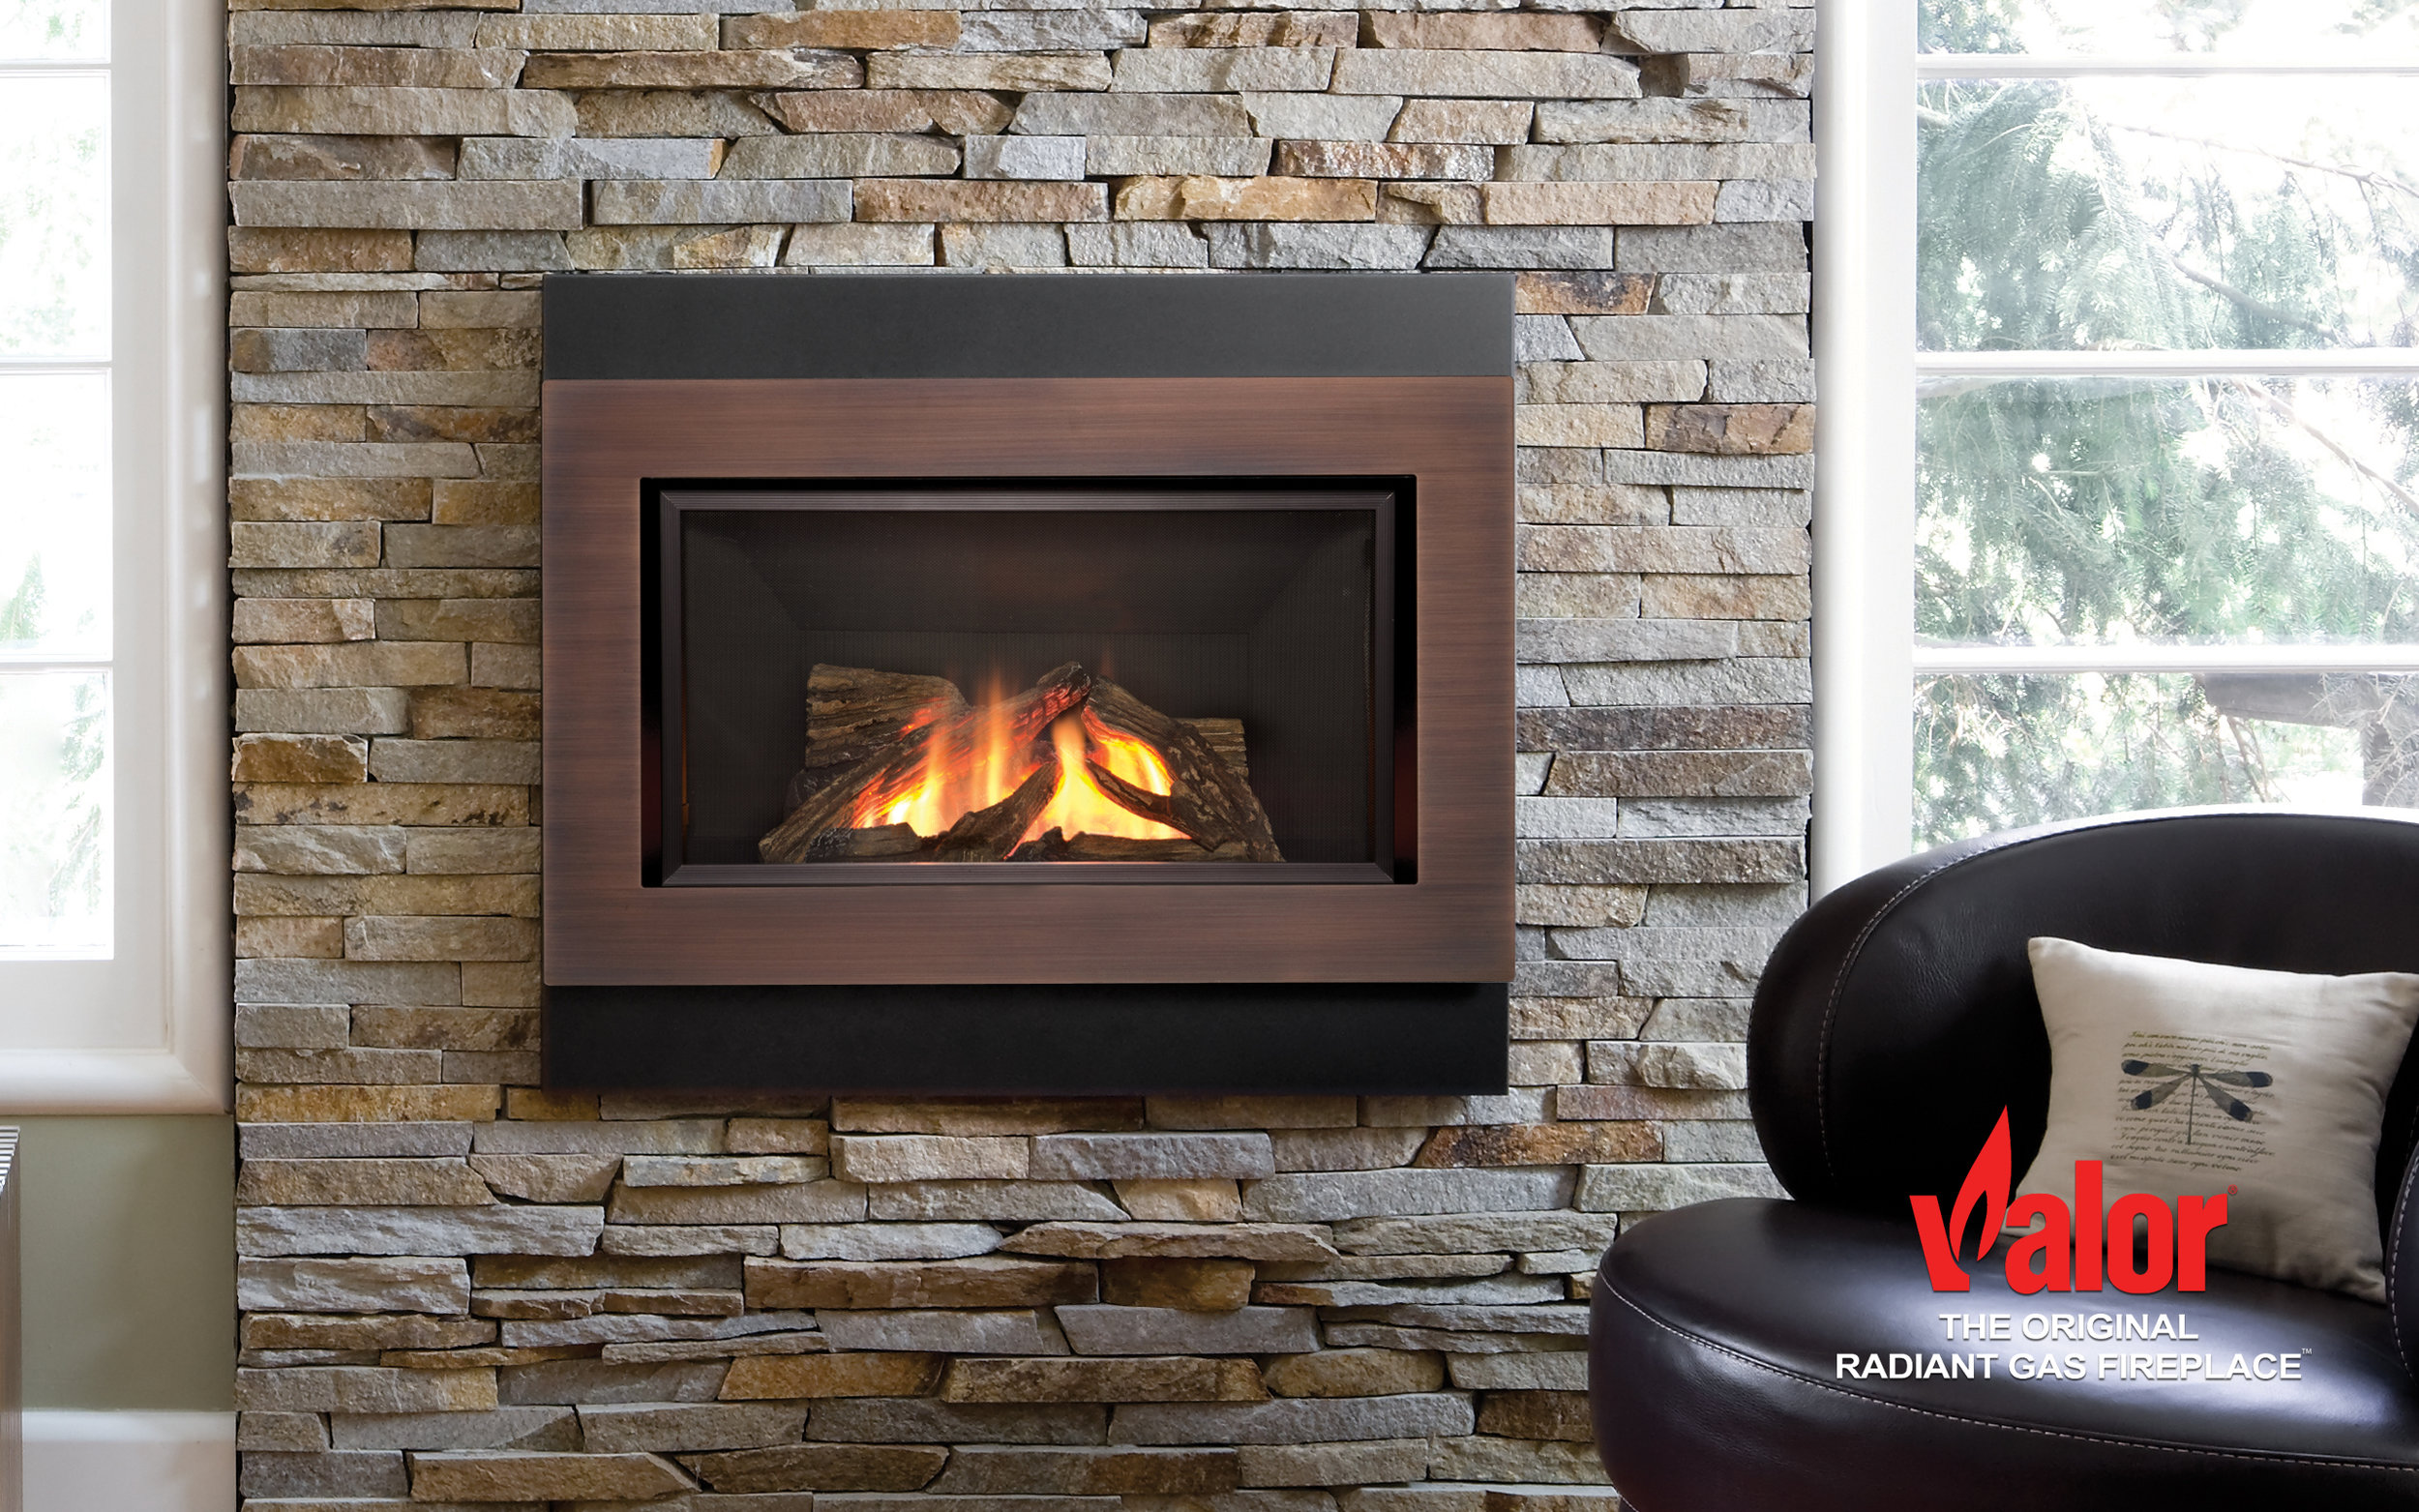 The H4 Series eliminates the need for a traditional hearth in your living space. Elevated to your preferred height the H4 nestles comfortably in your choice of surrounding wall surfaces. Benefiting from the successes of the Horizon engine, the H4 has the same aluminized steel firebox, secondary heat exchanger, fire bed options and brick liner combinations.  Efficient warmth meets modern living to showcase a collection of clean, timeless designs. Choose from two different (landscape and square) backing plates and one of four inner bezel surrounds in copper, nickel painted, nickel plated or black.